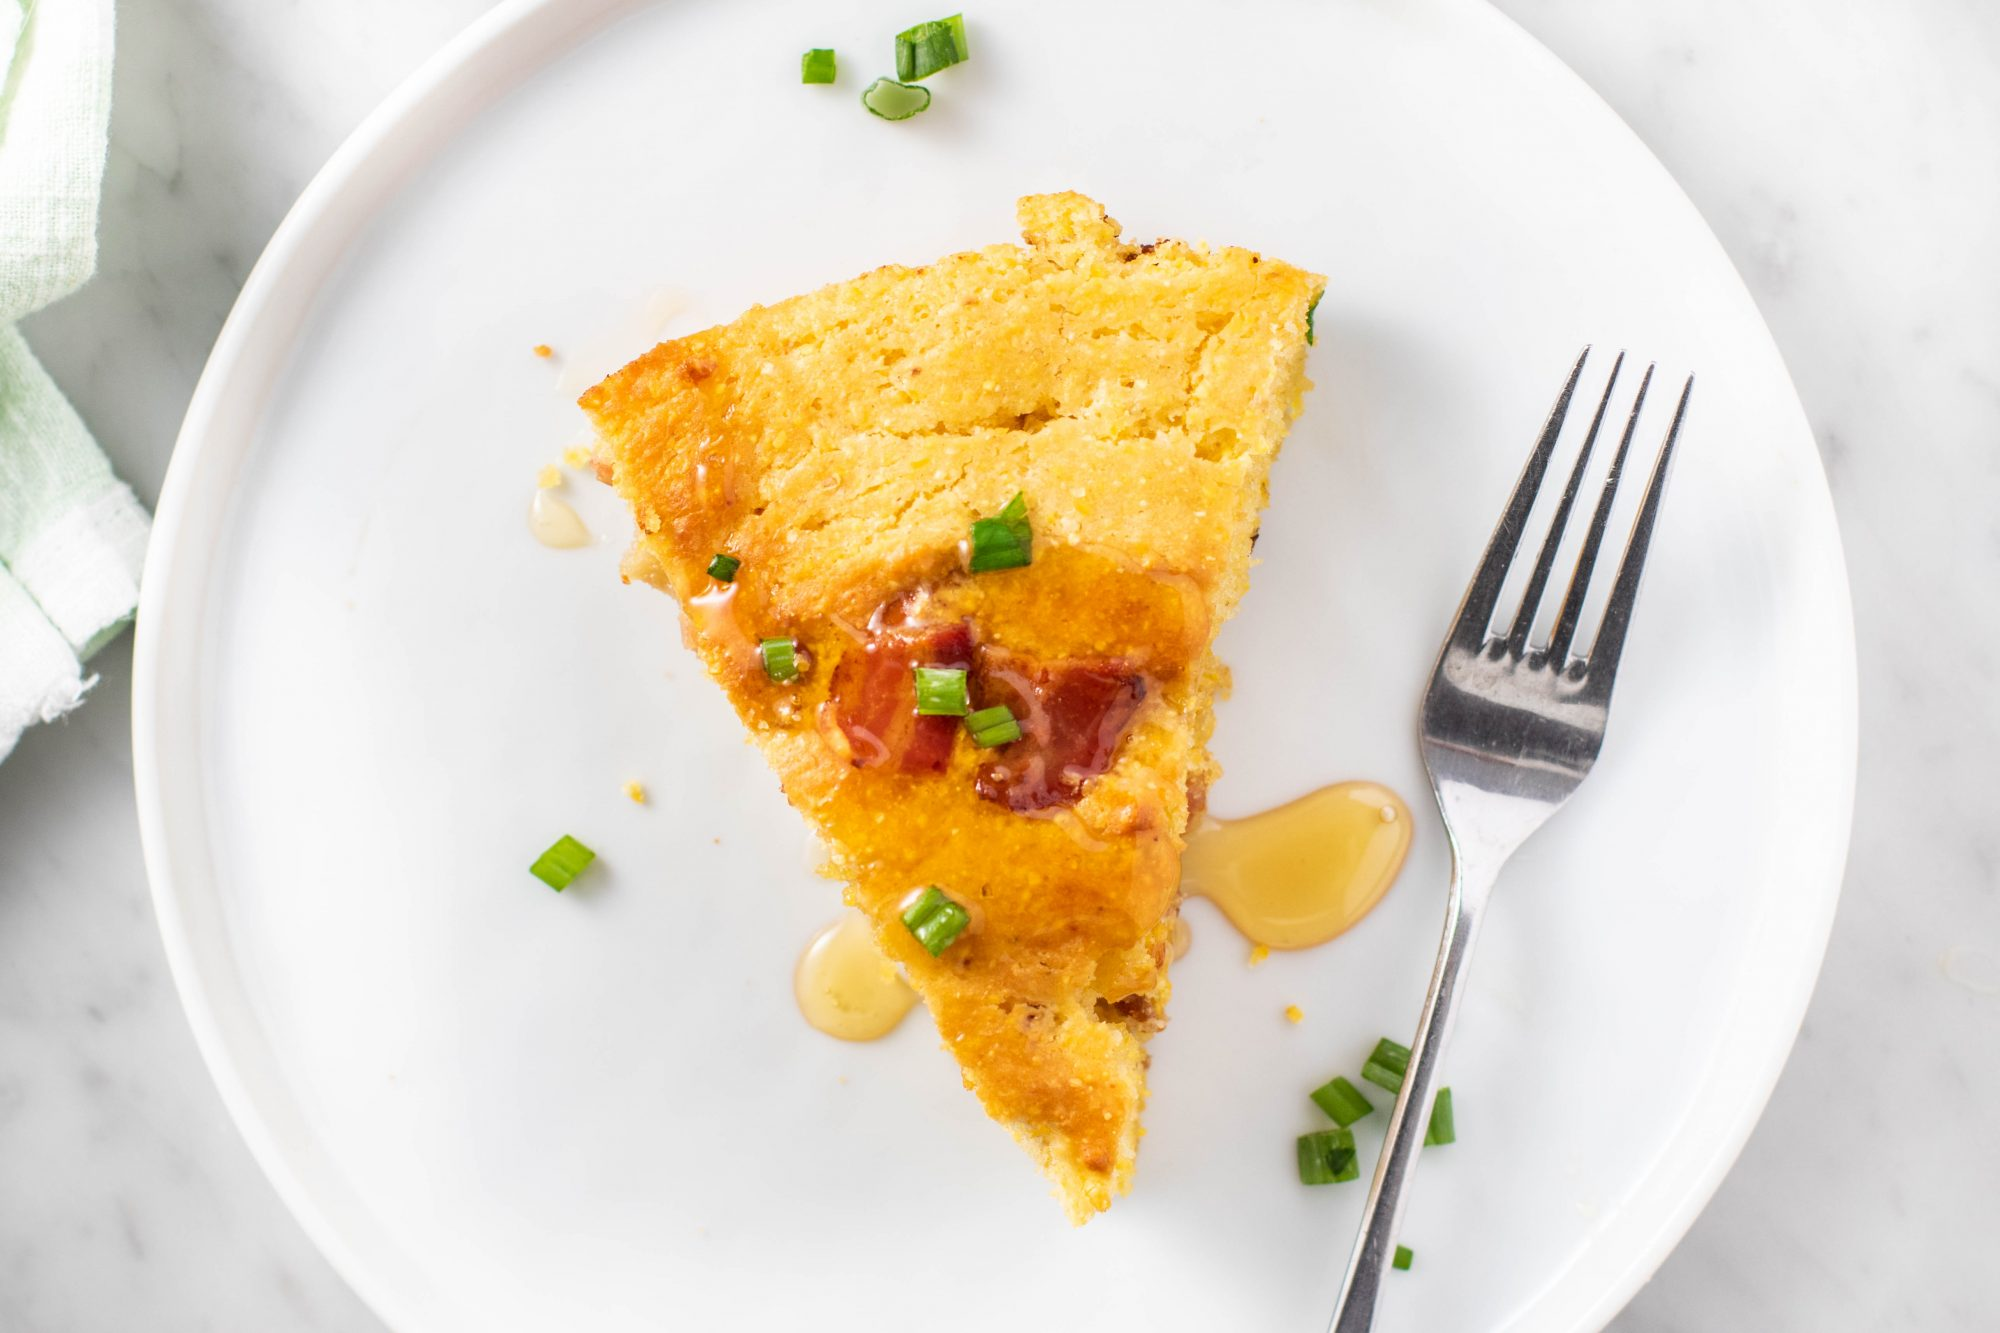 a slice of cornbread baked in a skillet